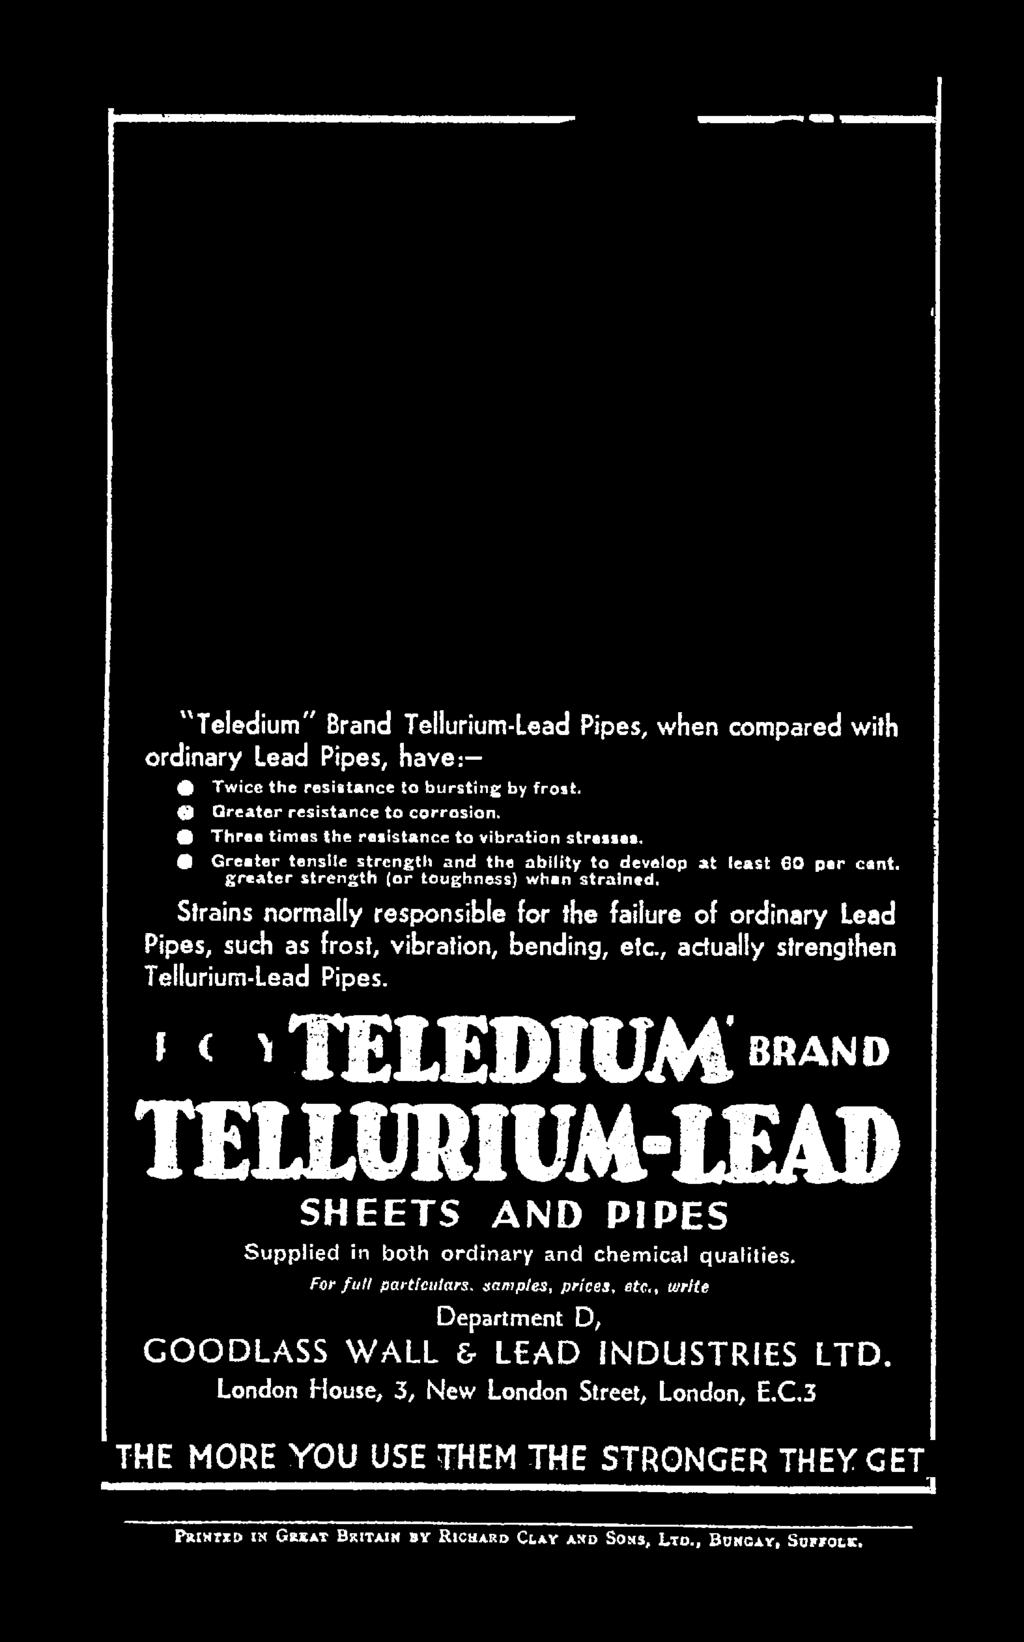 , actually strengthen Tellurium-Lead Pipes. '«'TELEDIUM brano TELLURIUM-LEAD SHEETS AND PIPES Supplied in both ordinary and chemical qualities.